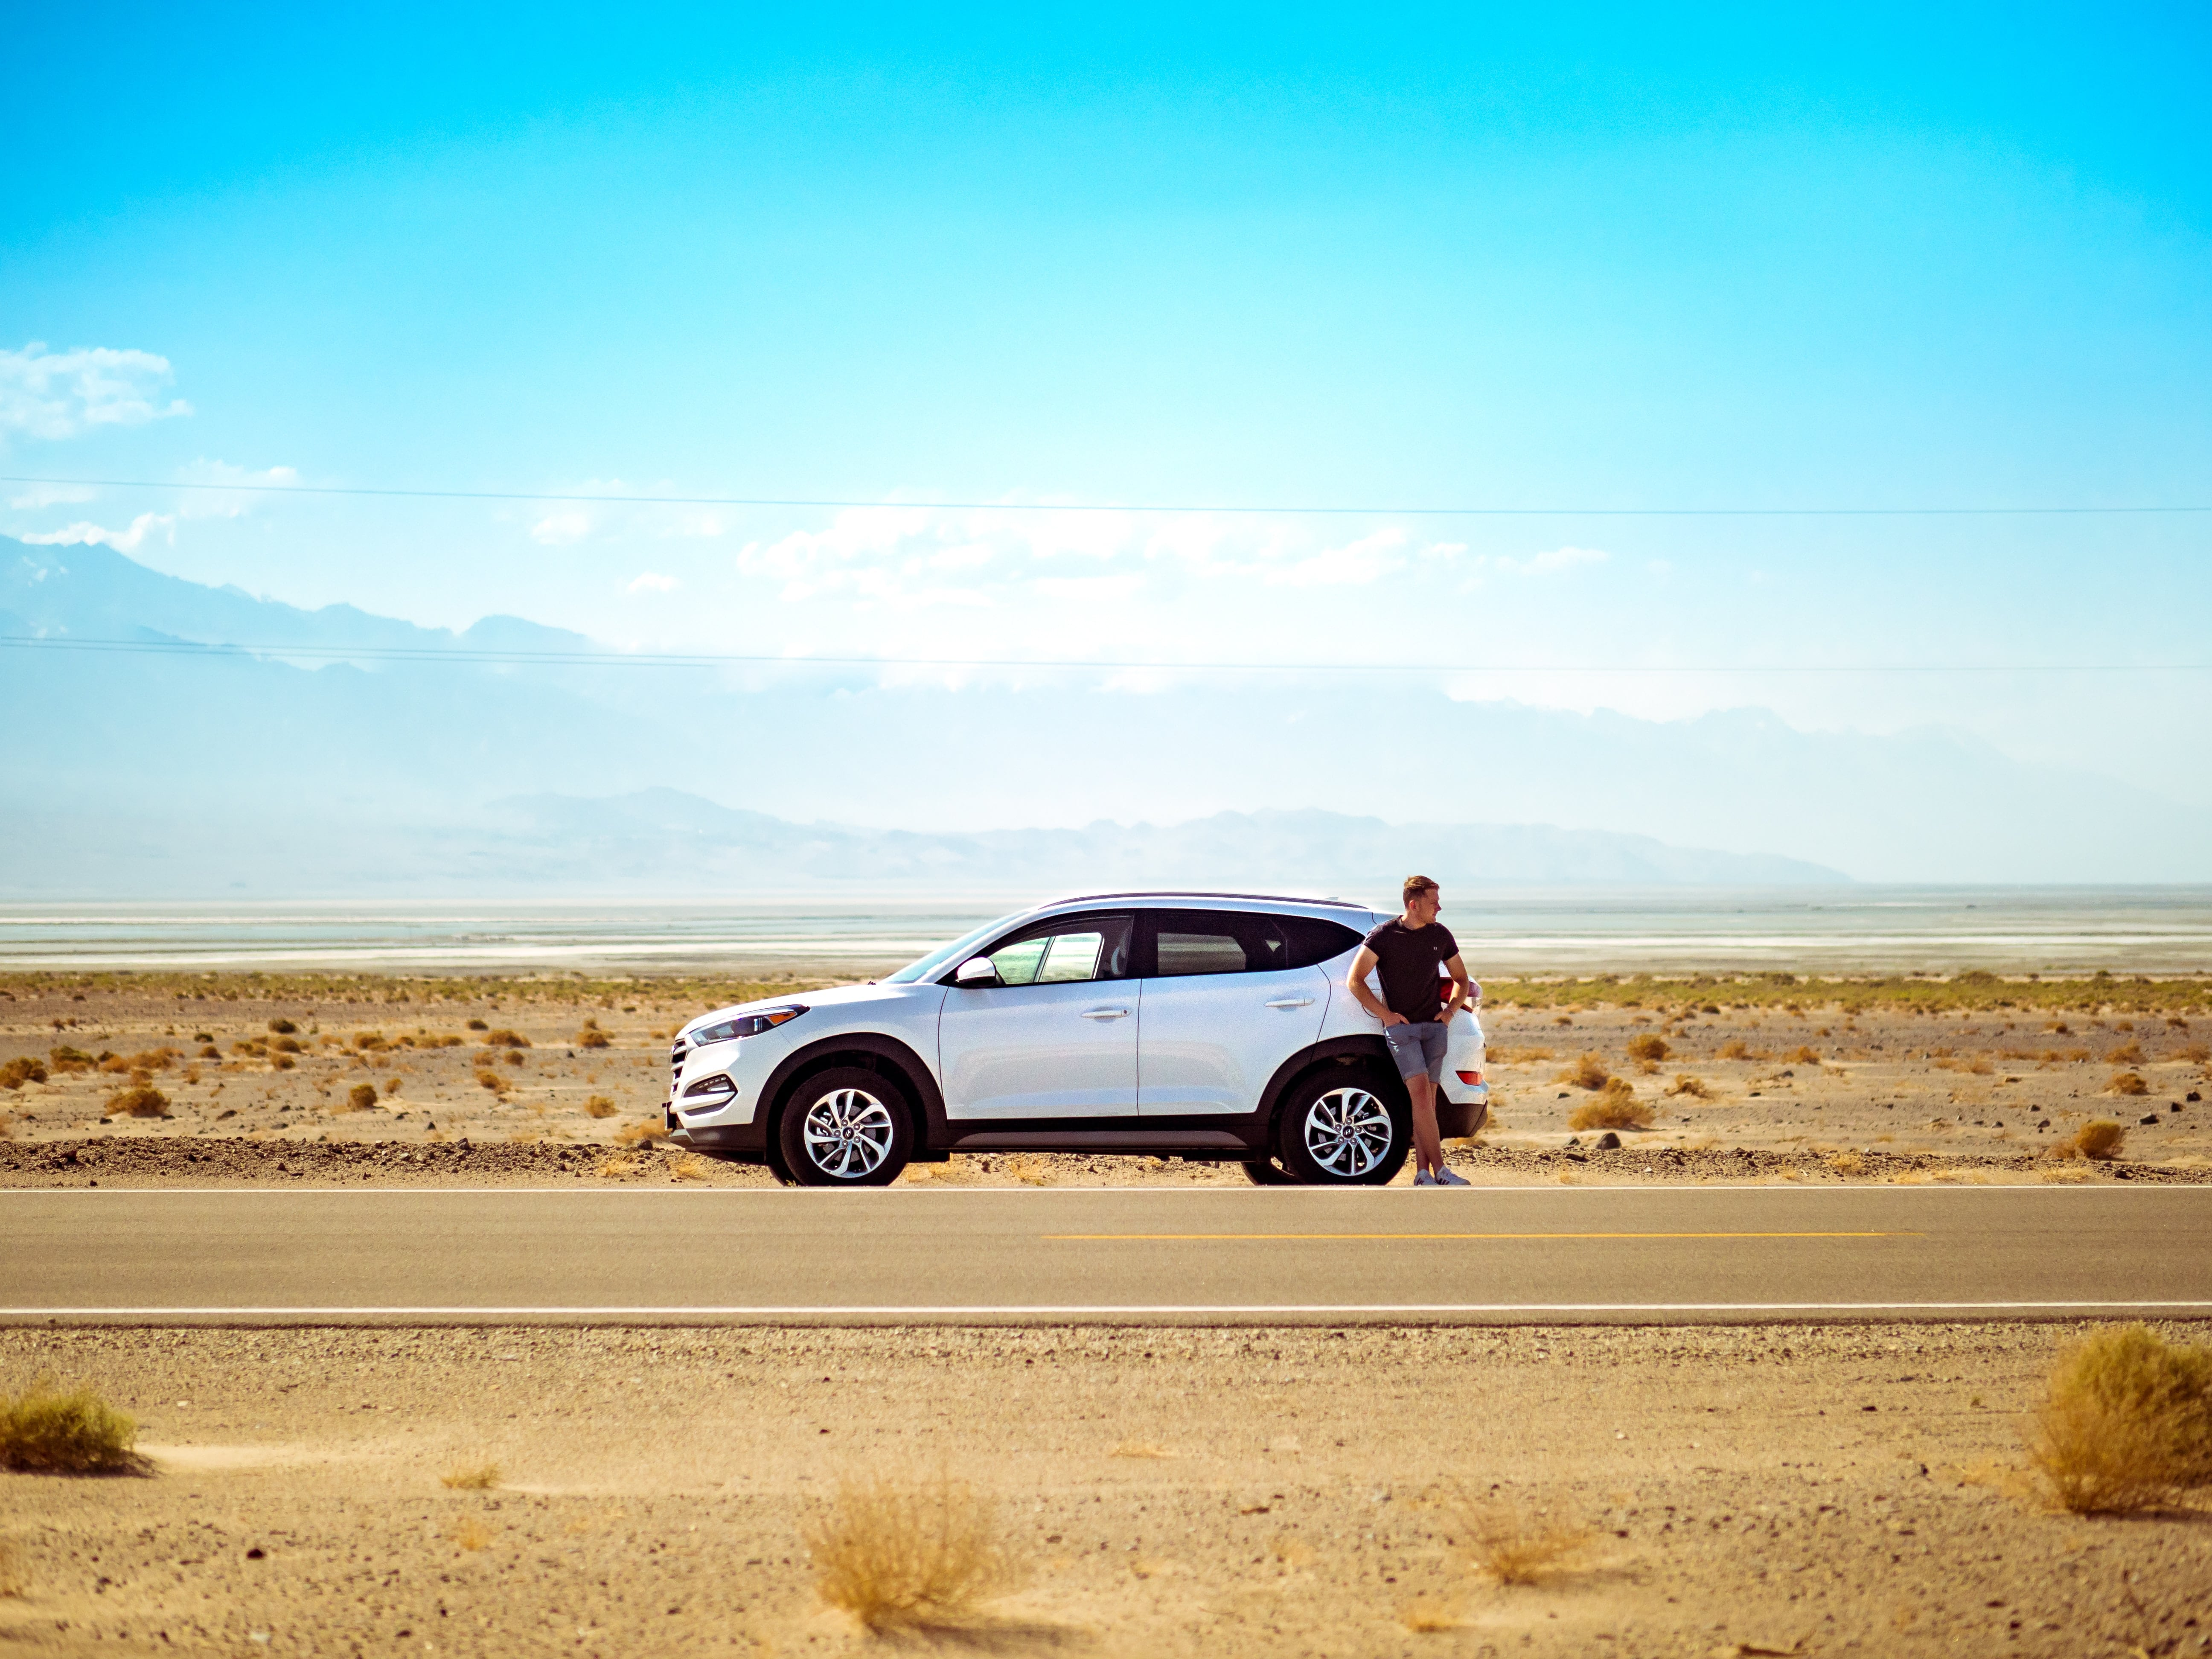 A person stands in front of a car on a stretch of road in a dessert landscape.